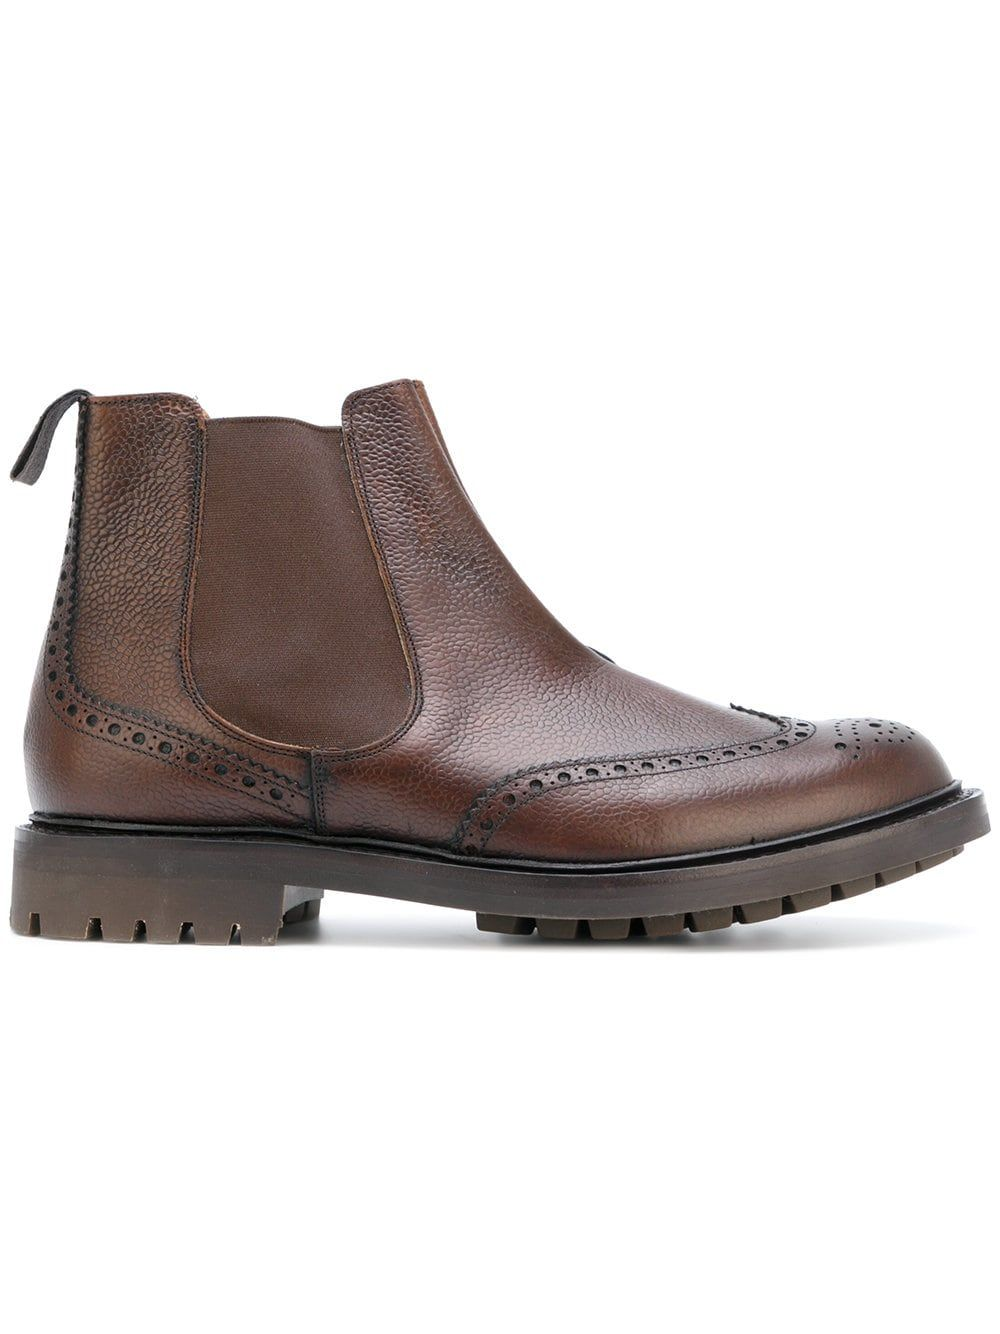 ca289224dbc3d Church's brogue detail Chelsea boots (Ravenfield with commando sole ...